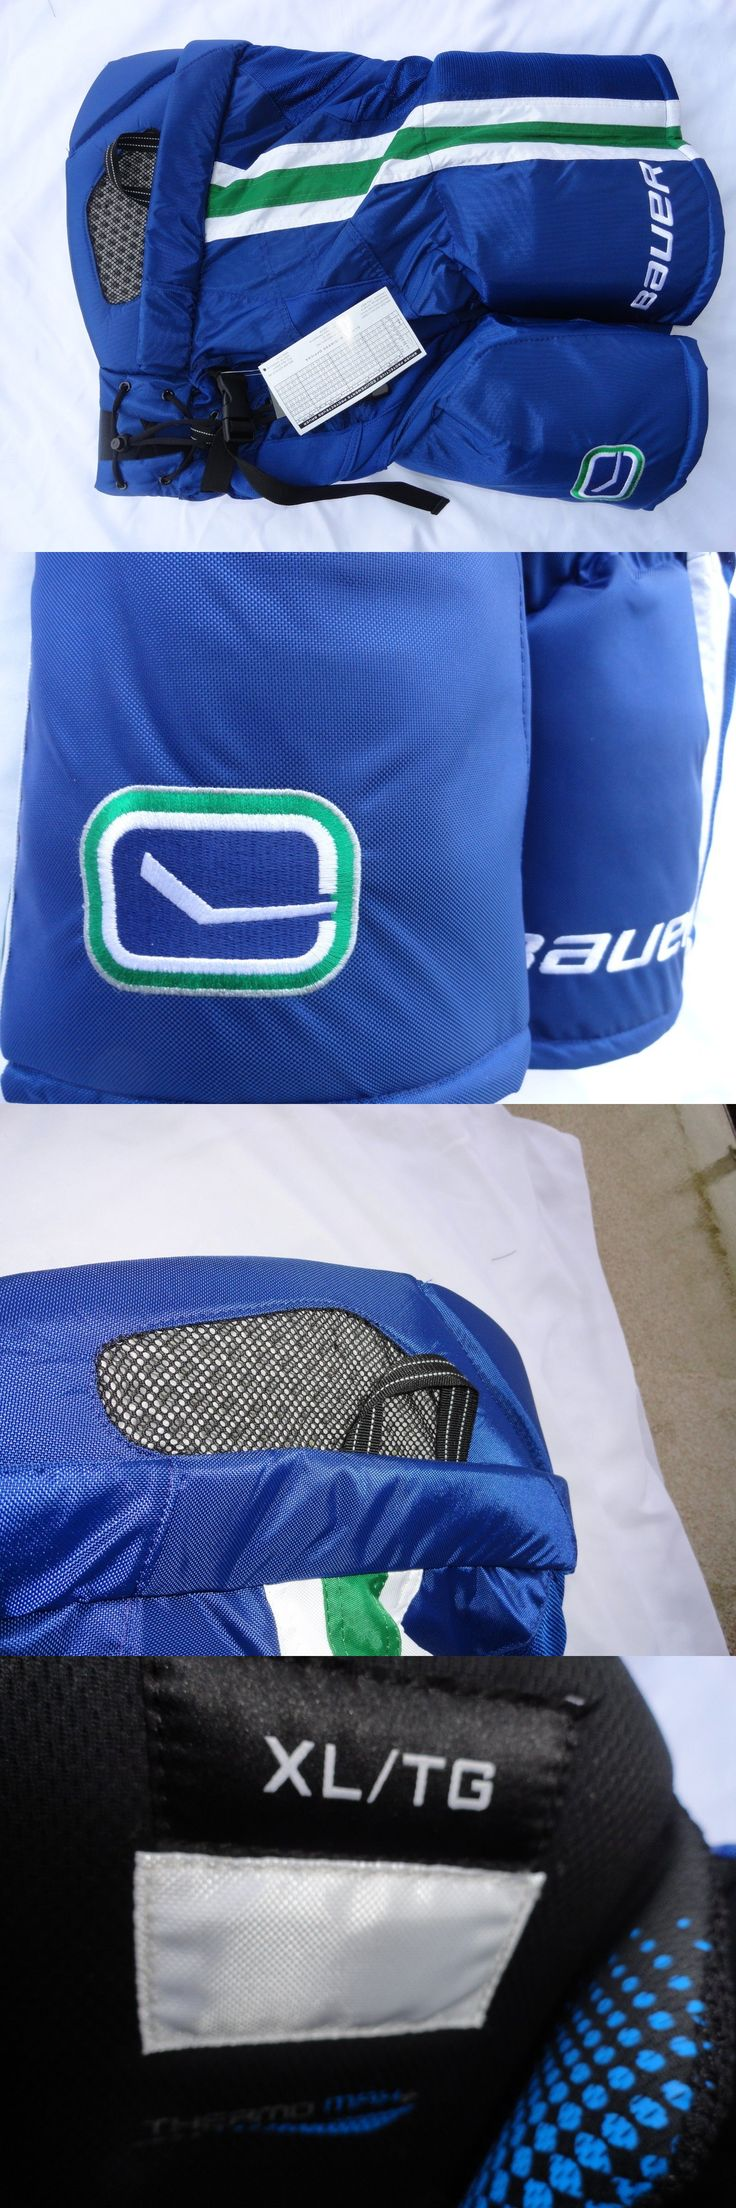 Other Hockey Protective Gear 79767: Pro Stock Hockey Pants Bauer Supreme One95 Nexus 1000 -> BUY IT NOW ONLY: $225 on eBay!